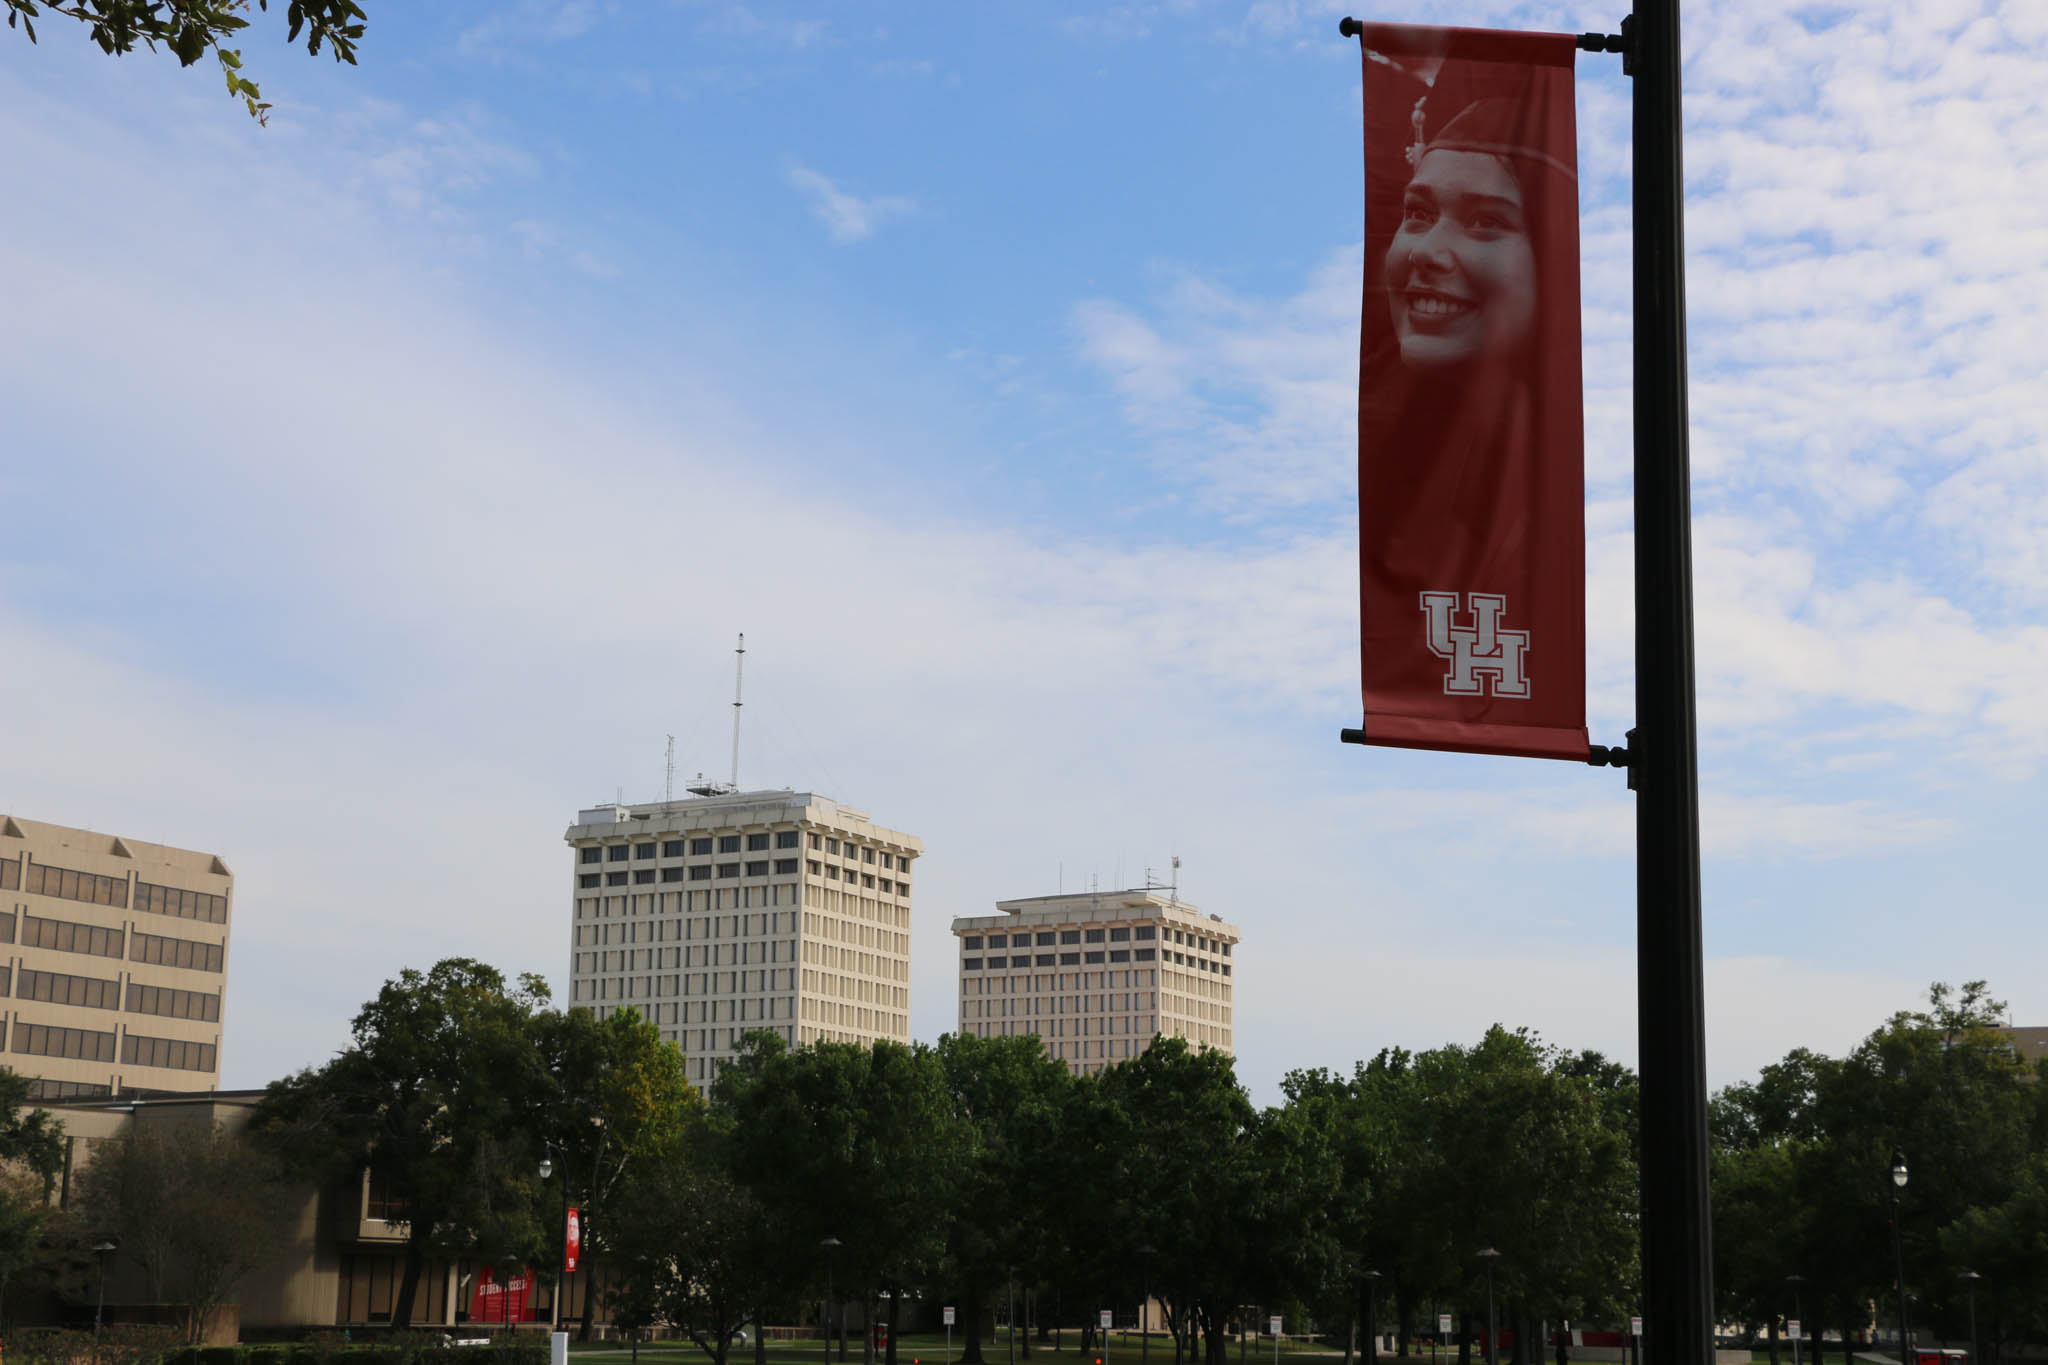 Moody Towers will remain open if demands for on-campus housing for the fall is needed, according to Yackley. | Sydney Rose/The Cougar